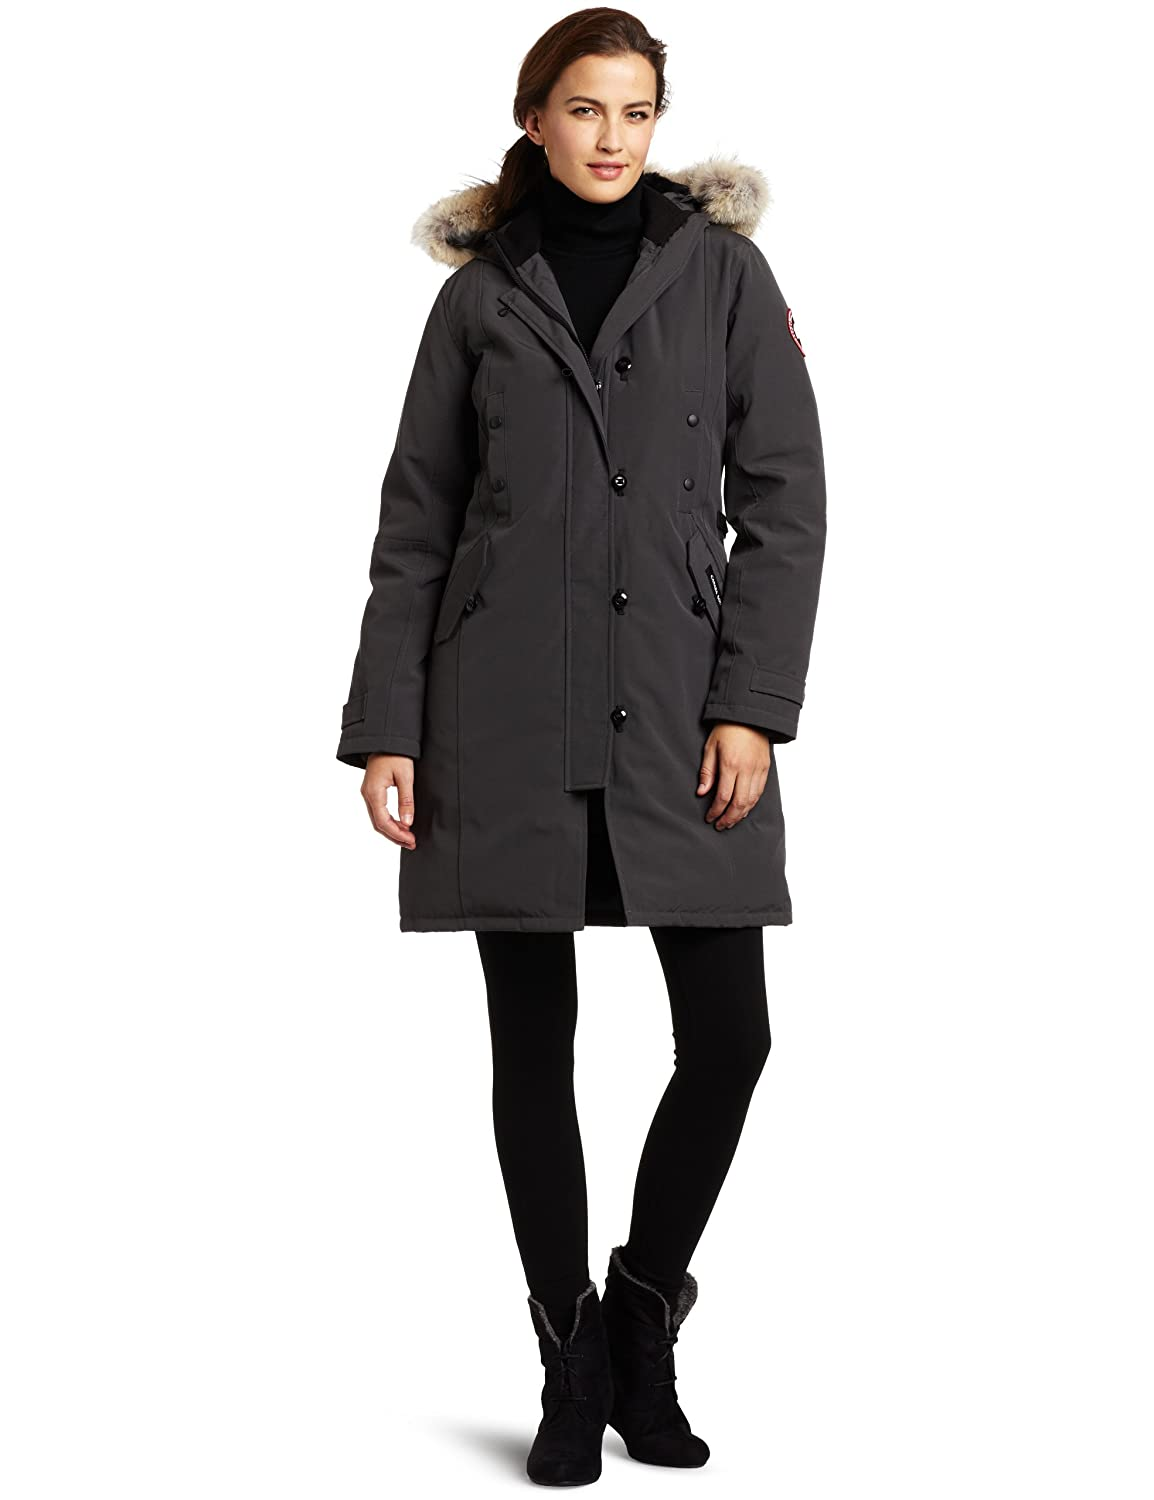 Best Women's Coats & Jackets